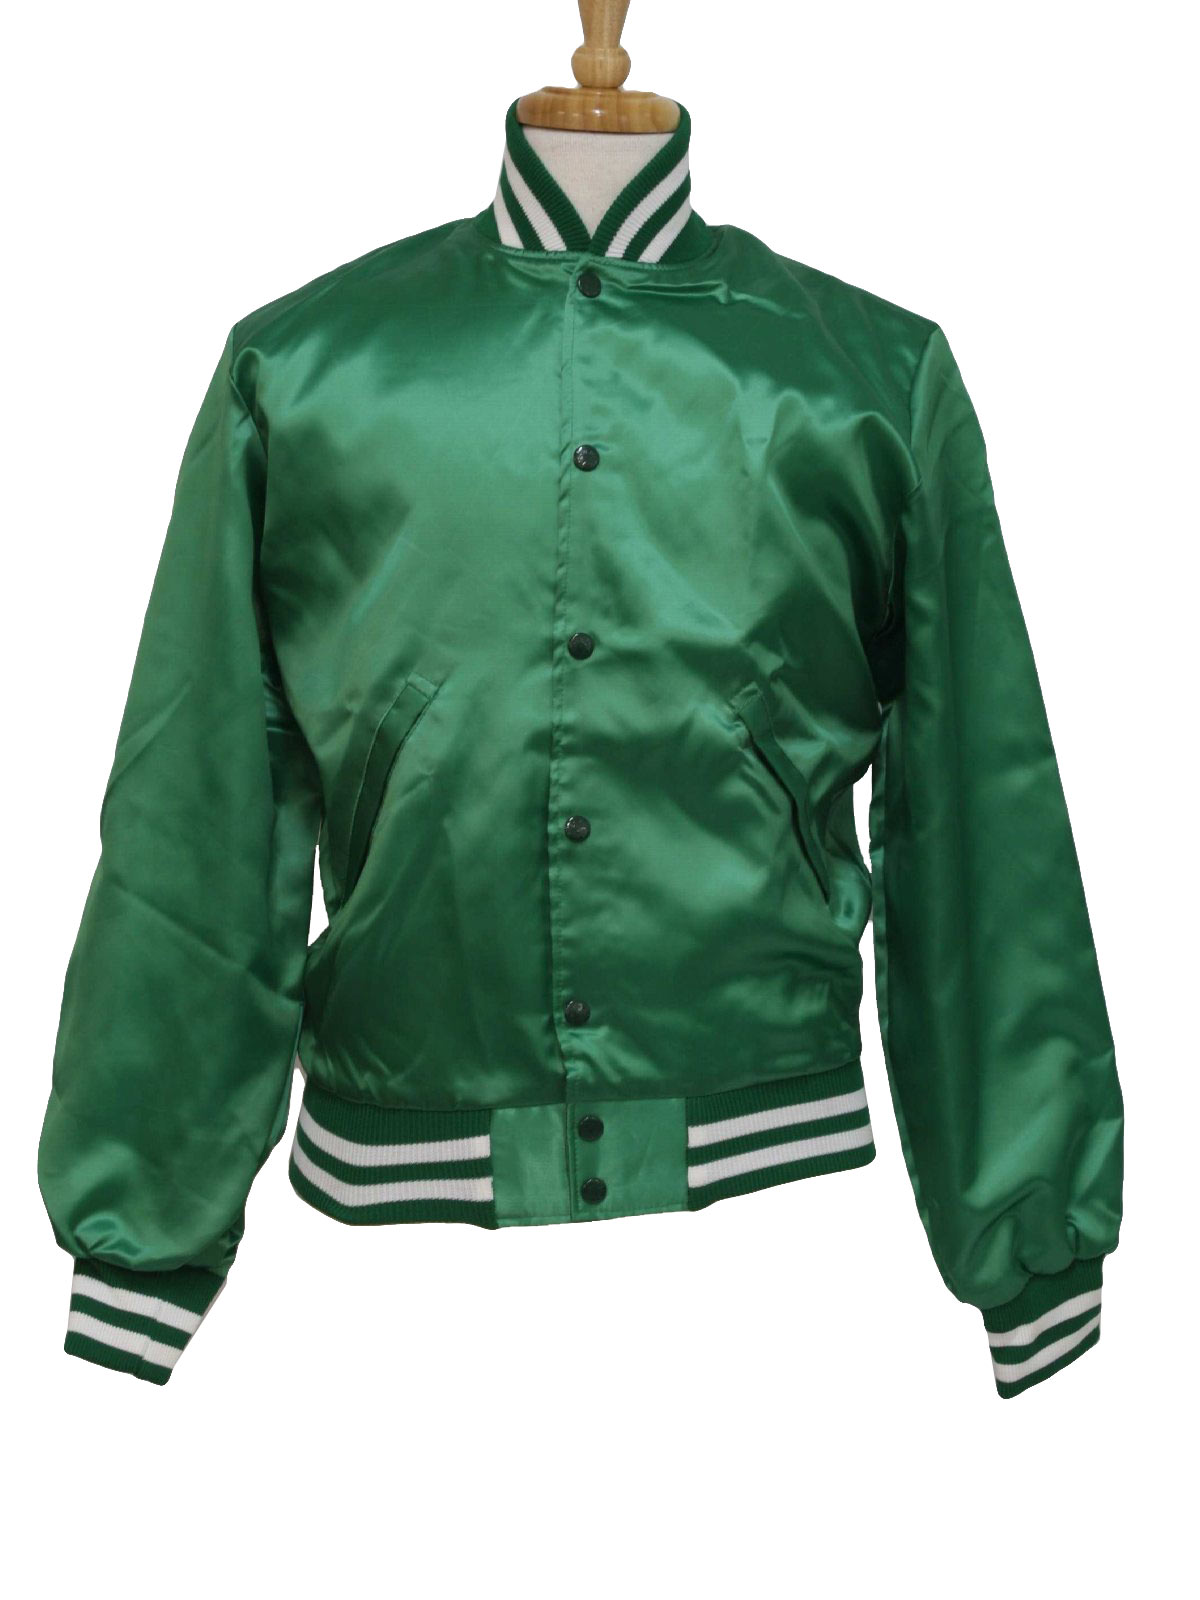 80s Vintage Birdie Jacket: 80s -Birdie- Mens emerald green and ...